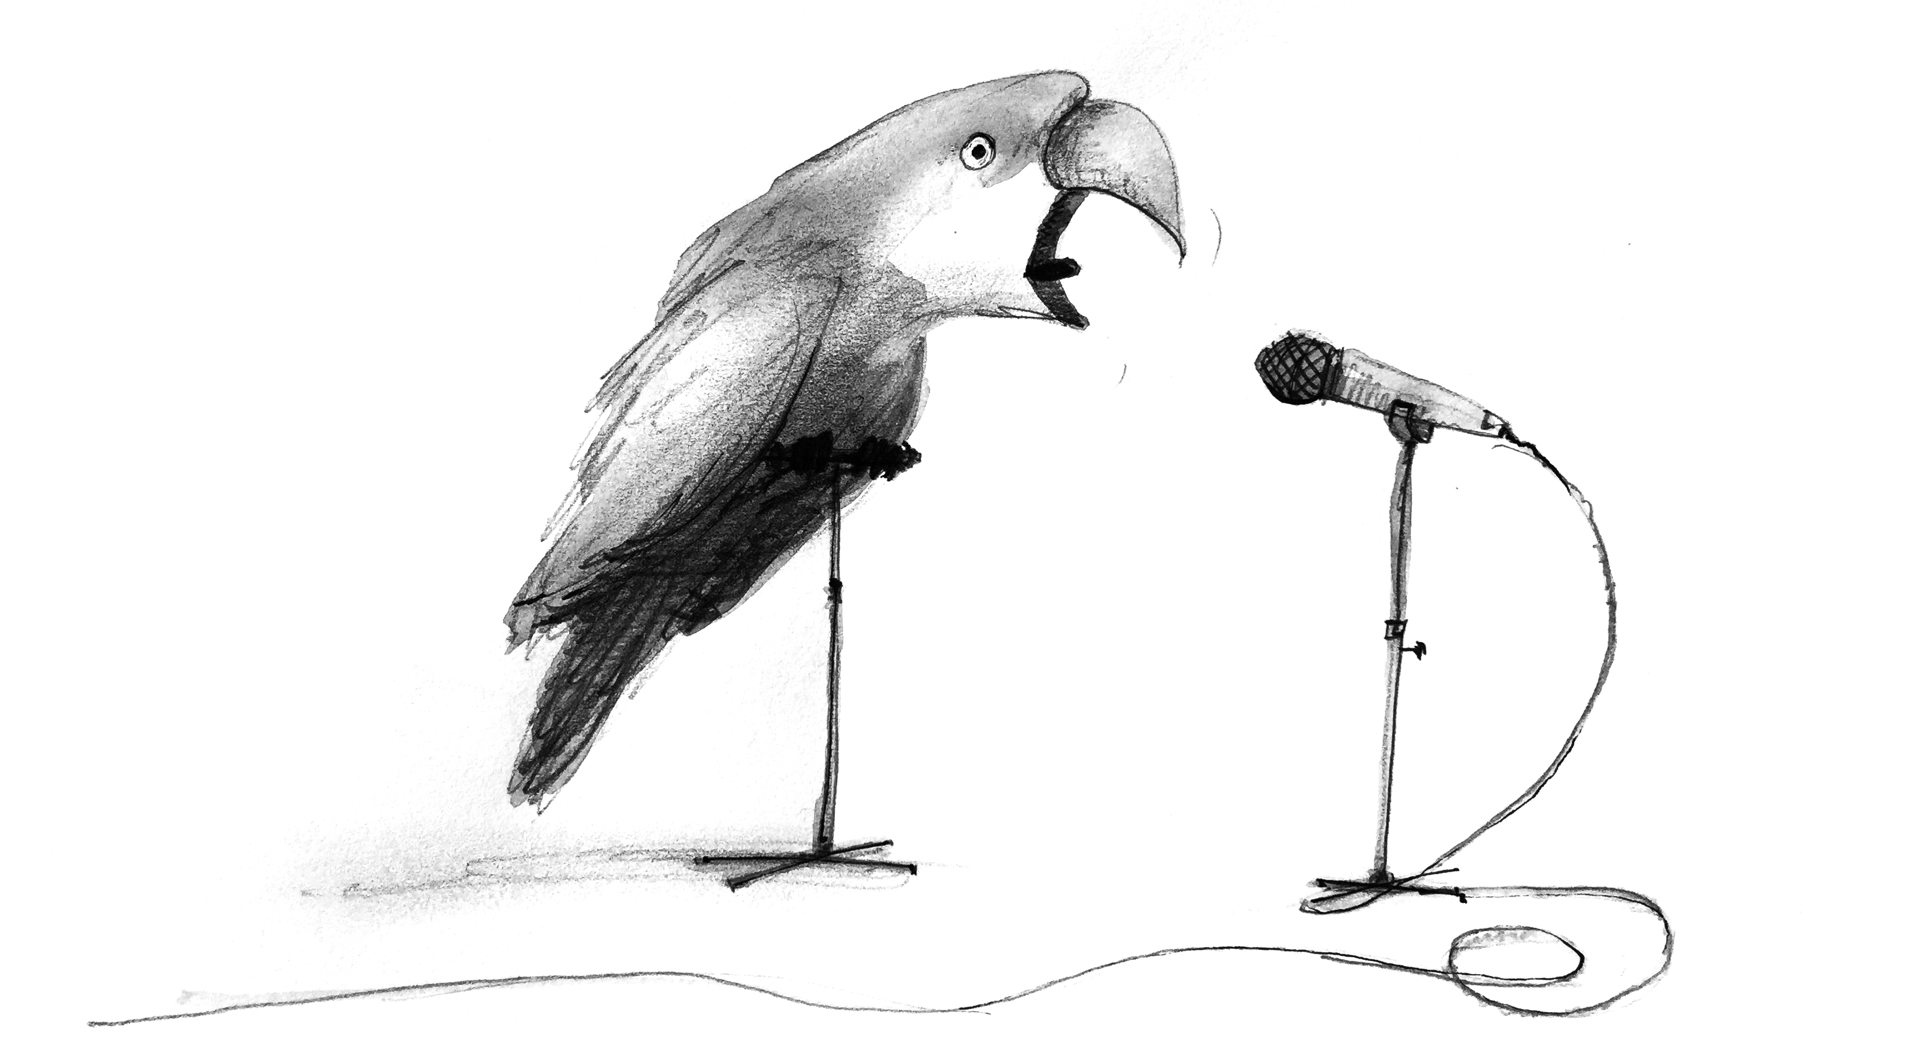 Illustration: A parrot offers advice and answers to all the best questions into a nearby microphone.